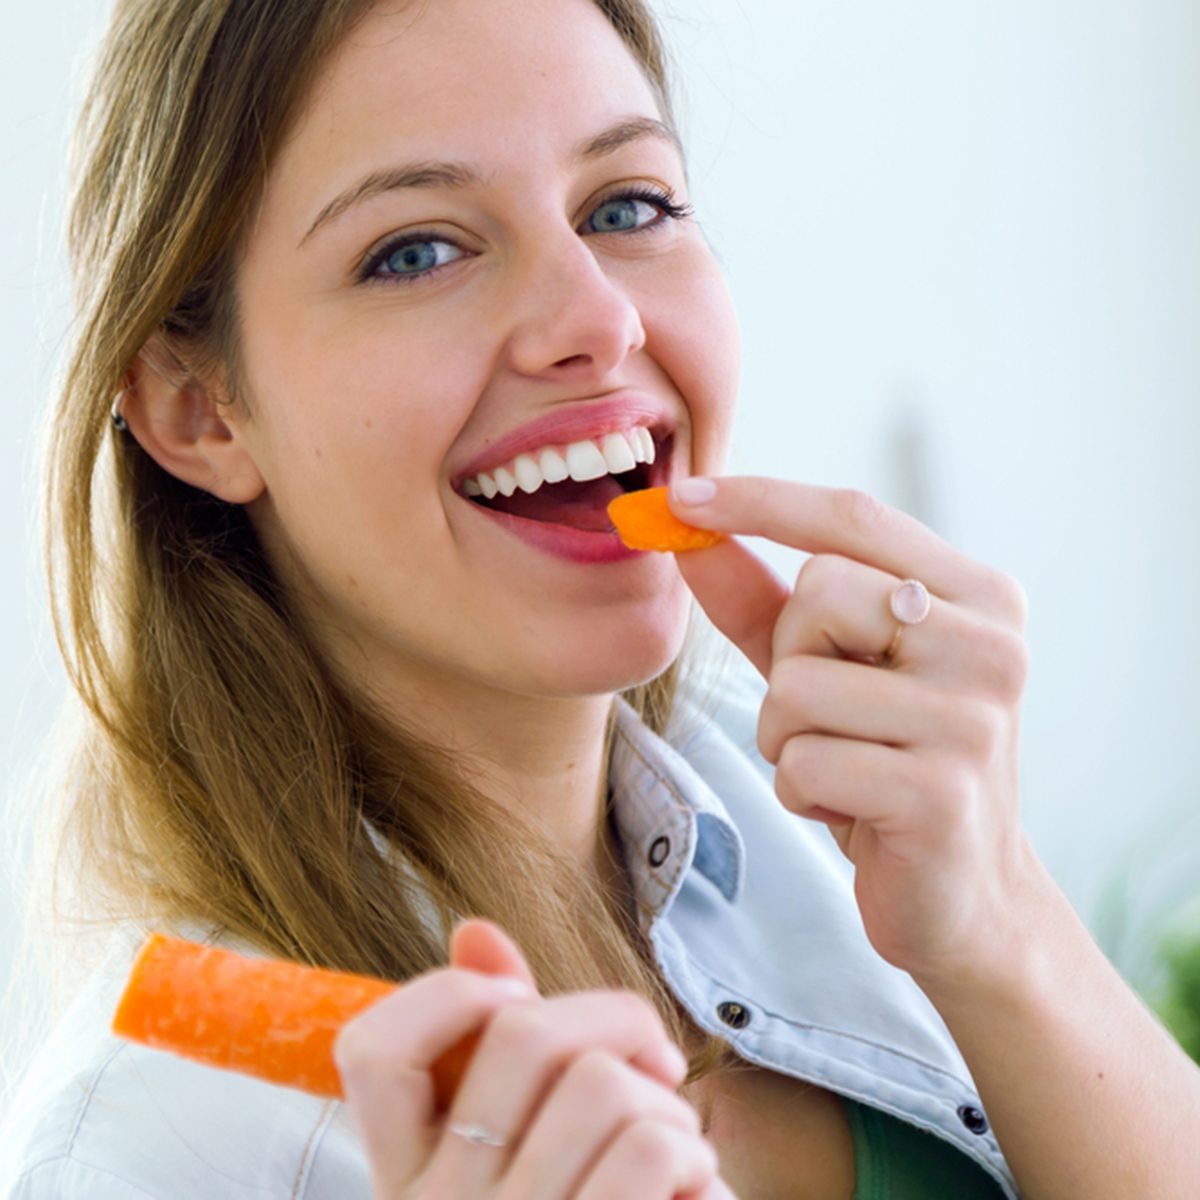 Portrait of pretty young woman eating carrot in the kitchen.